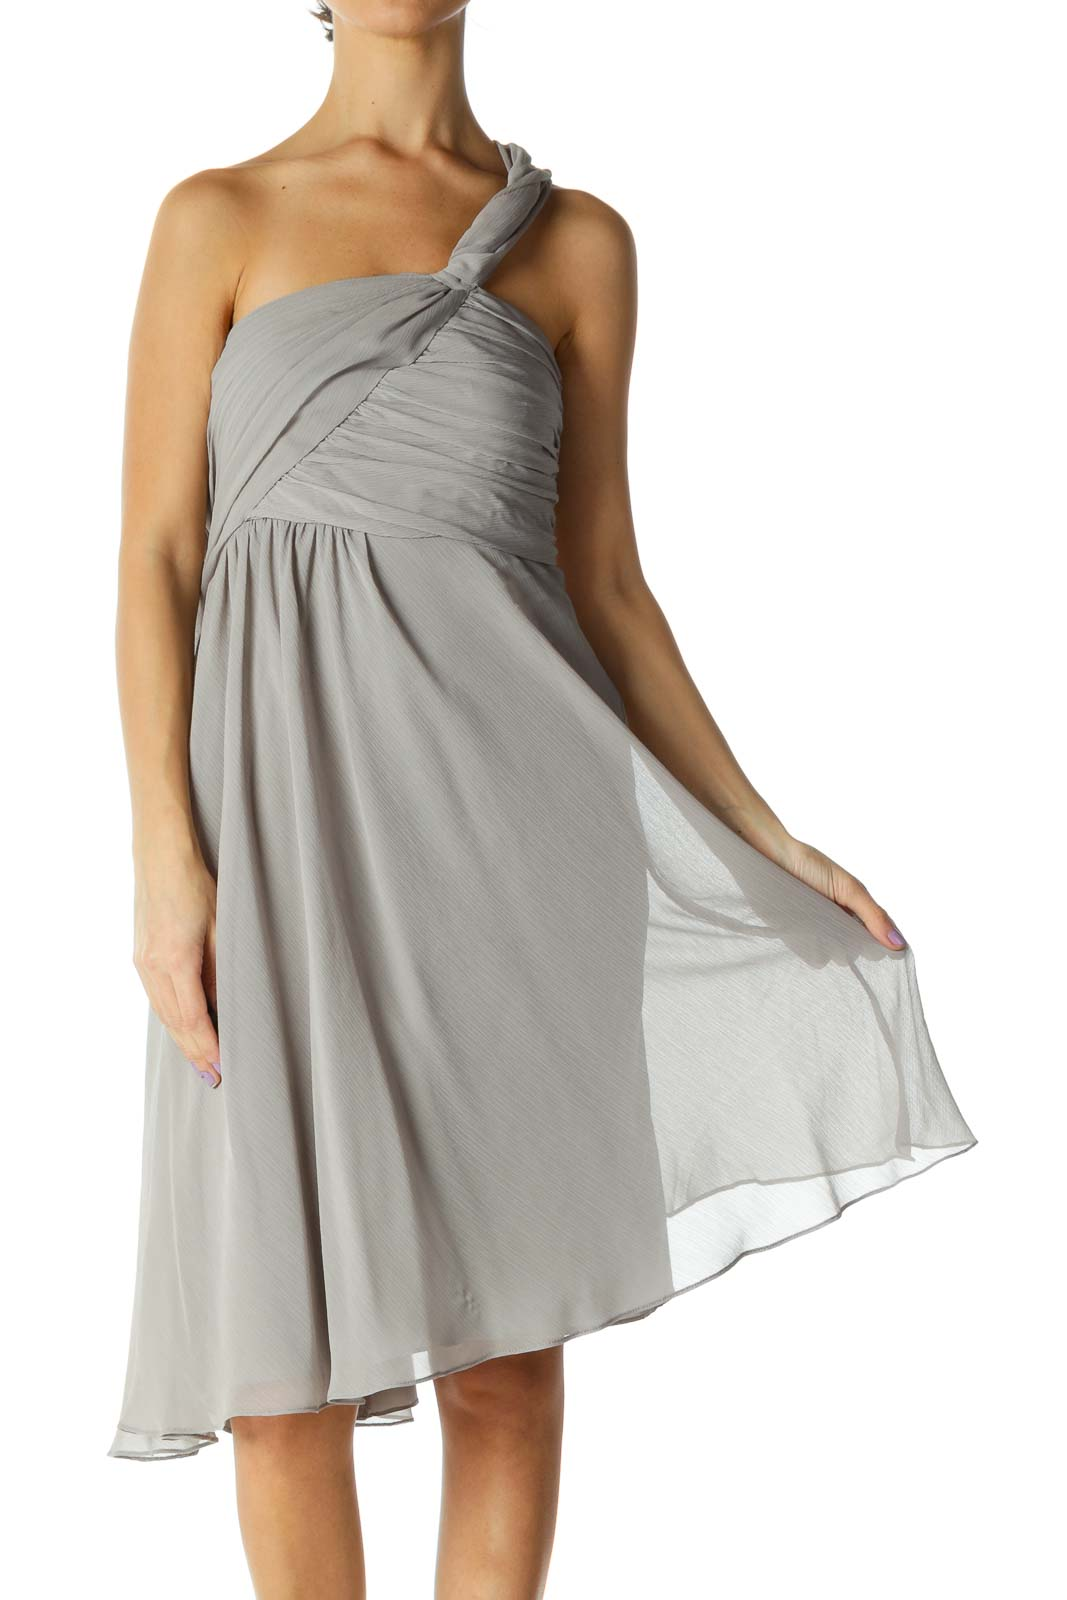 Gray Solid Cocktail A-Line Dress Front